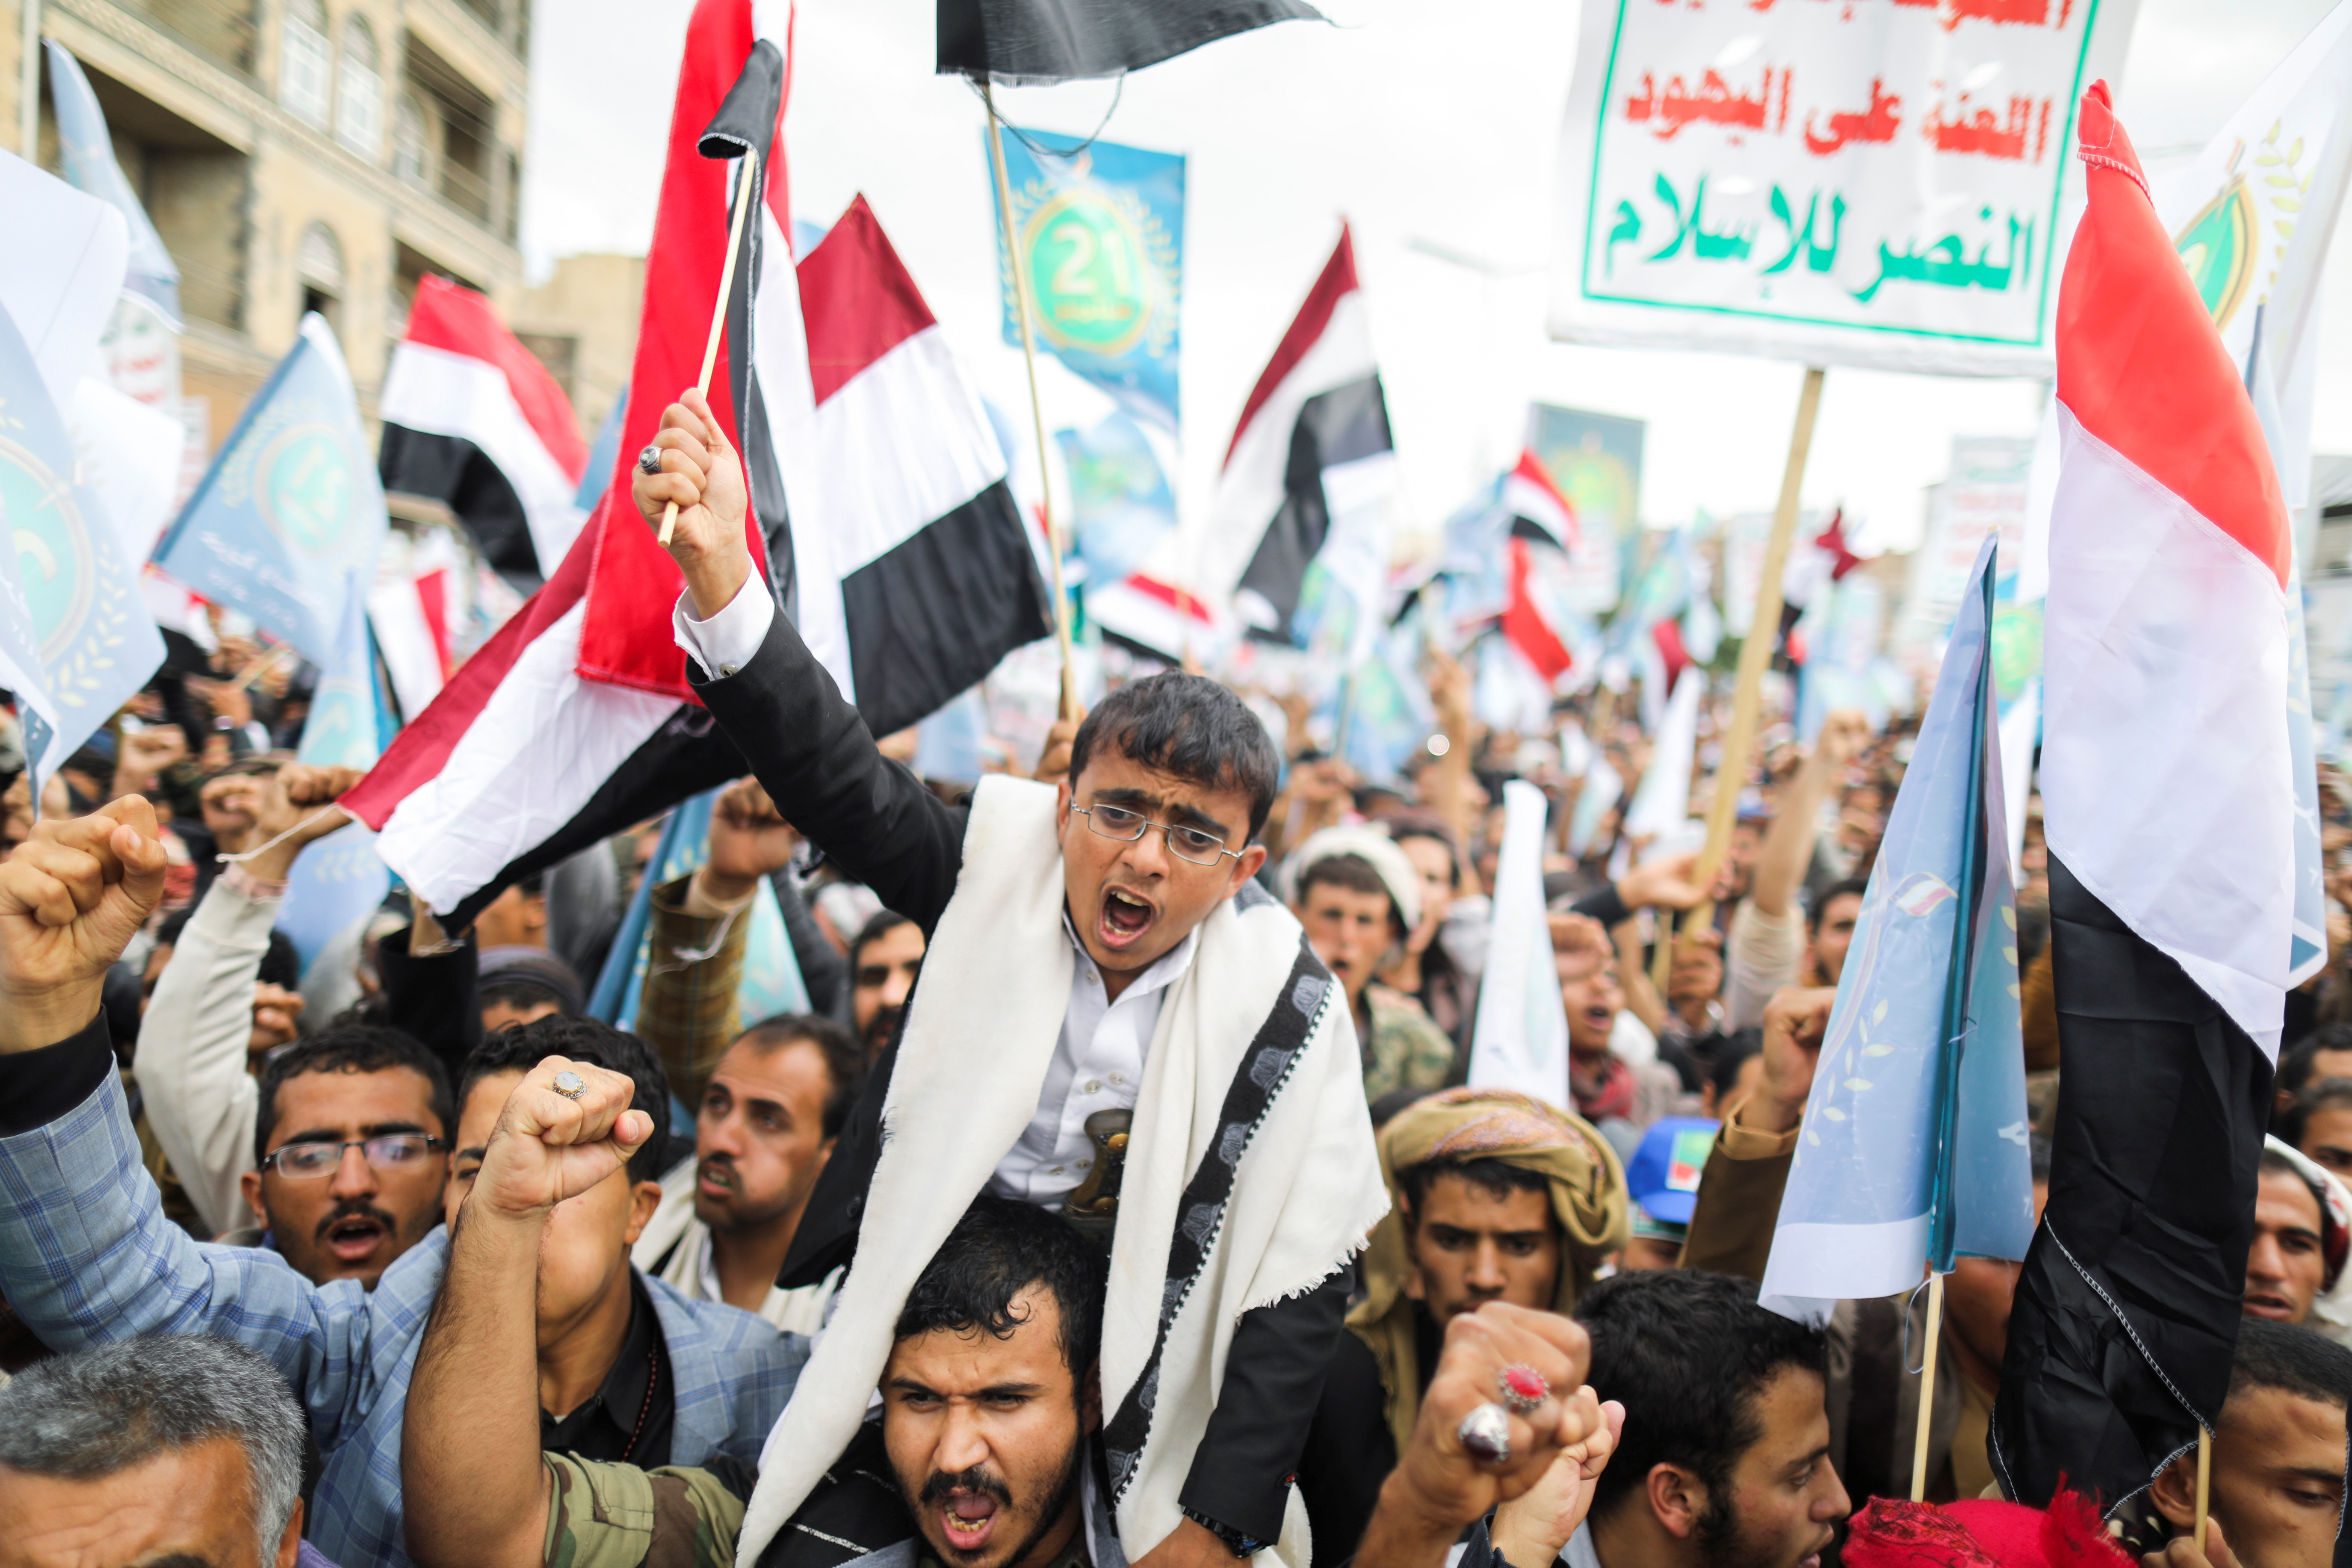 Supporters of Yemen's Houthis shout slogans during a rally to celebrate the seventh anniversary of the ousting of the government in Sanaa, Yemen September 21, 2021. REUTERS/Khaled Abdullah